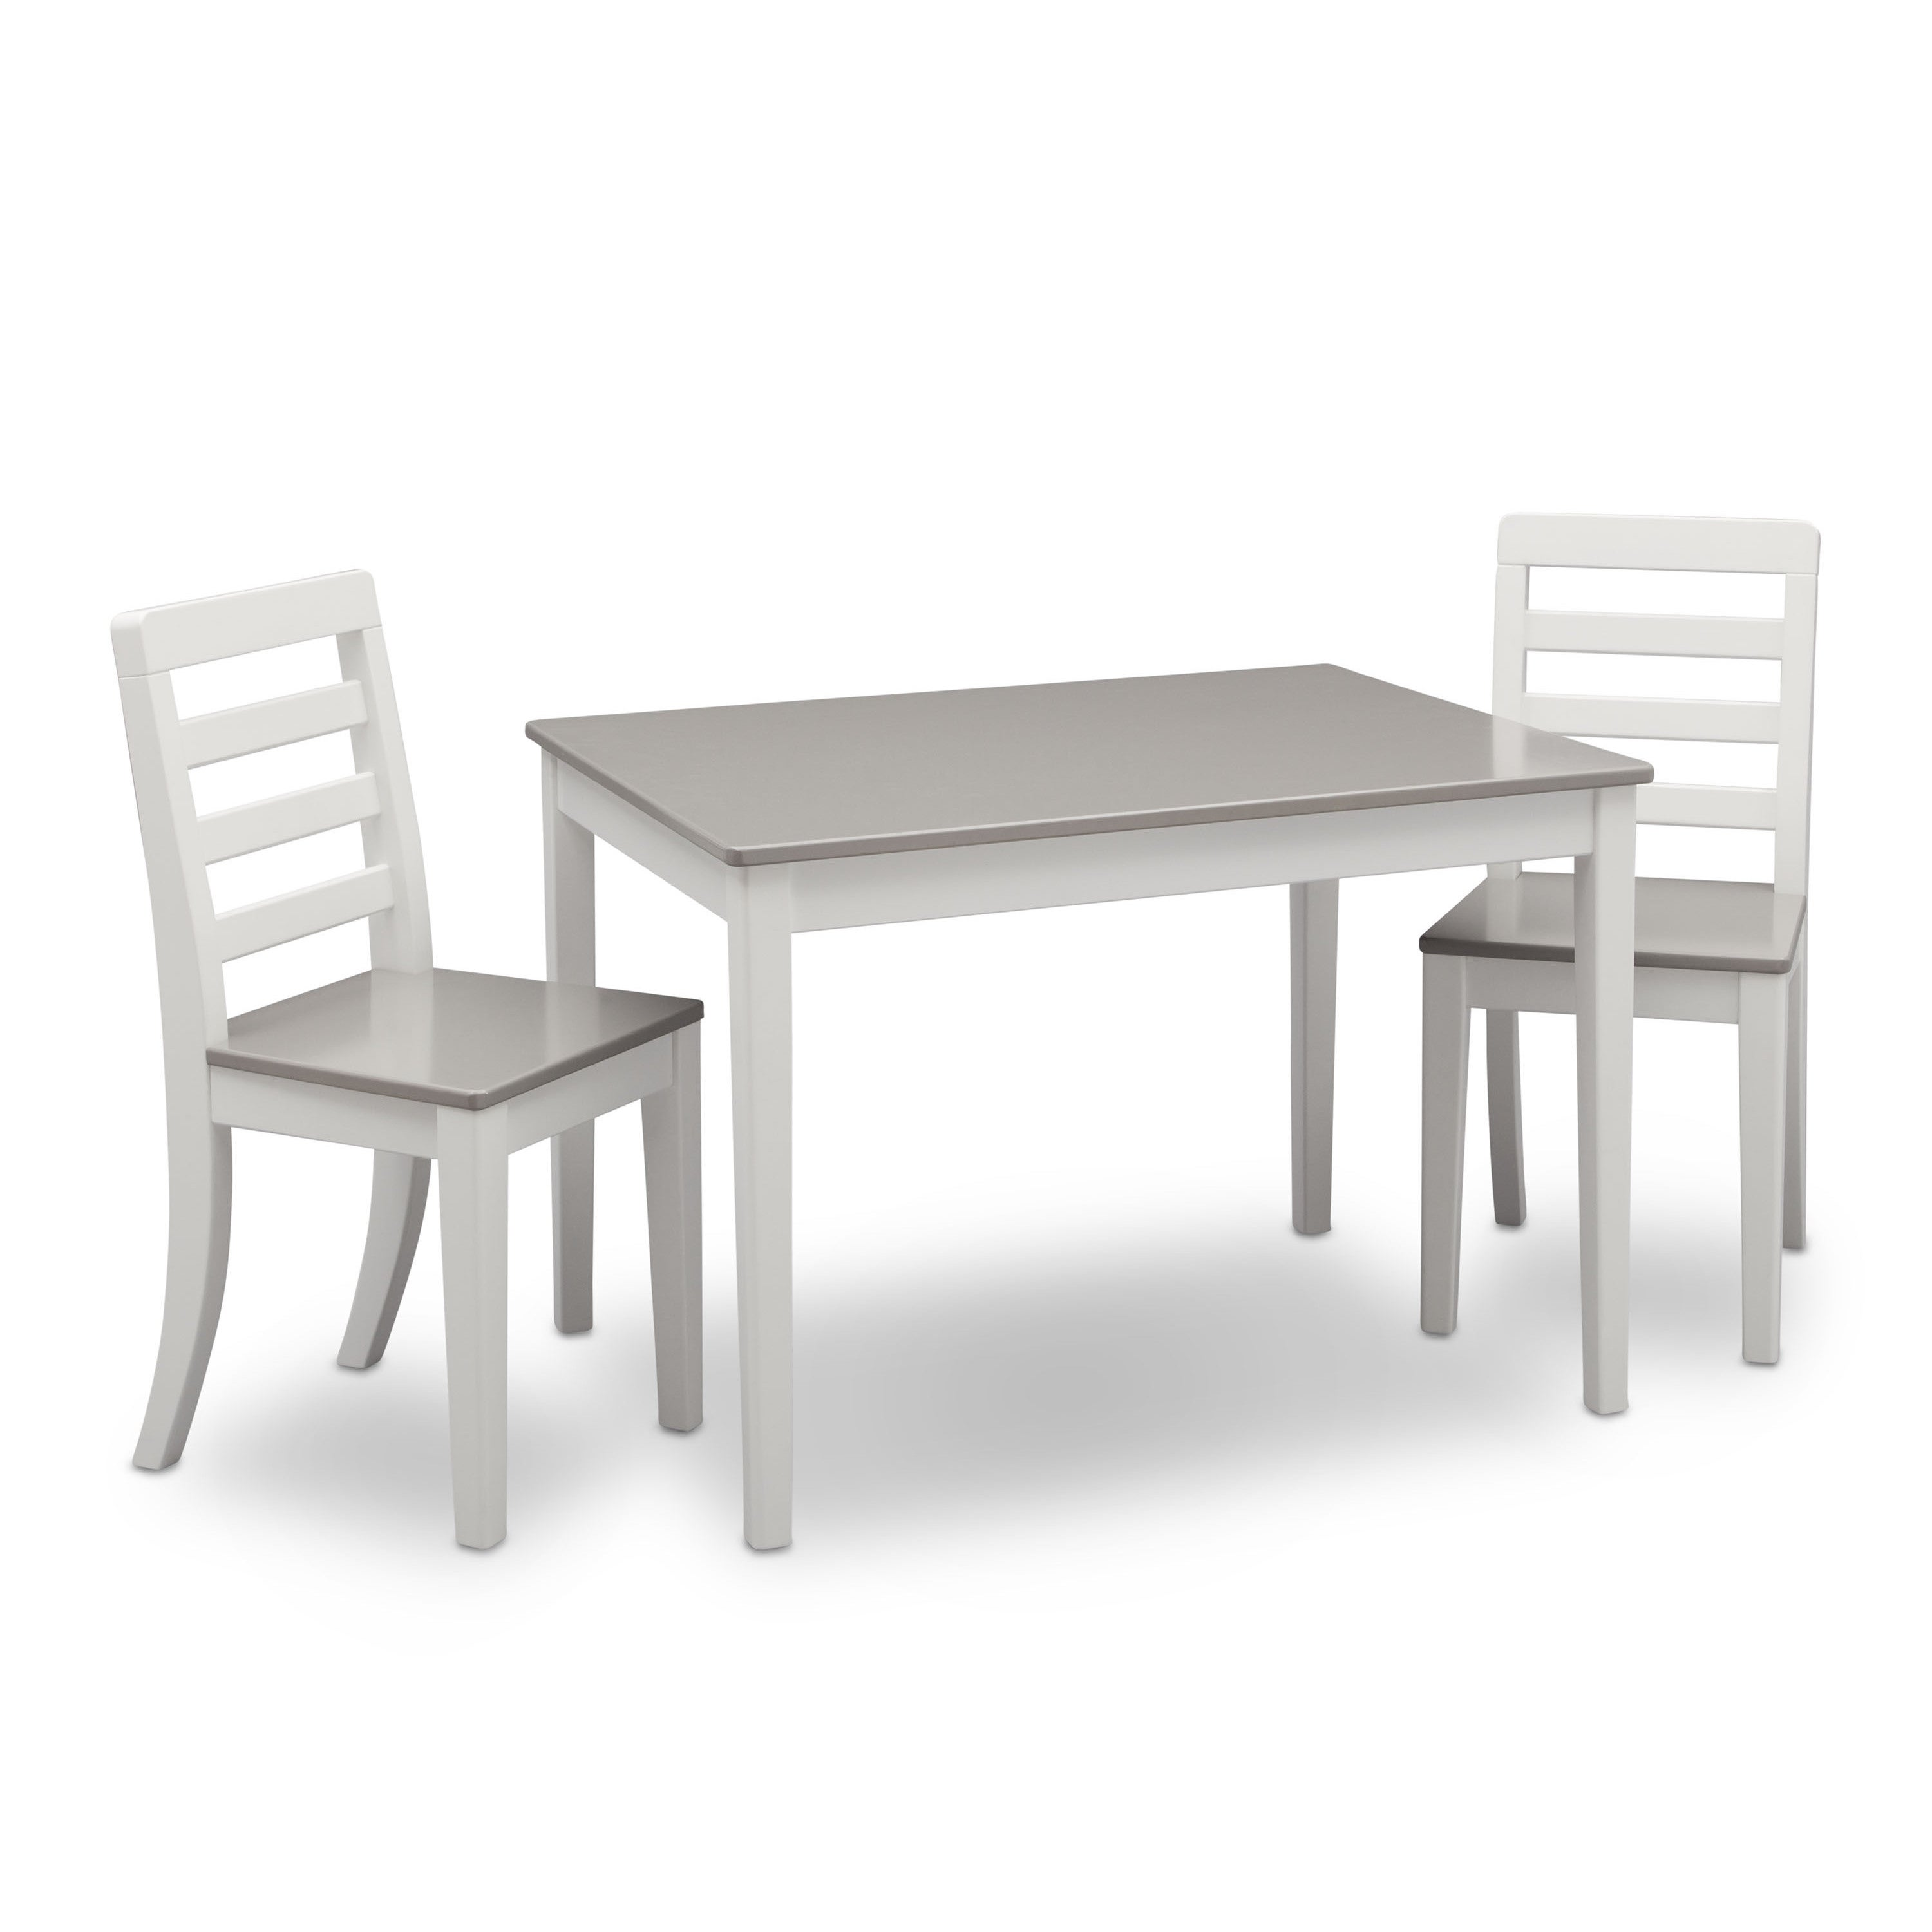 Shop Delta Children 3-piece Grey and White Table and Chairs Set - Free Shipping Today - Overstock.com - 12806788  sc 1 st  Overstock.com & Shop Delta Children 3-piece Grey and White Table and Chairs Set ...